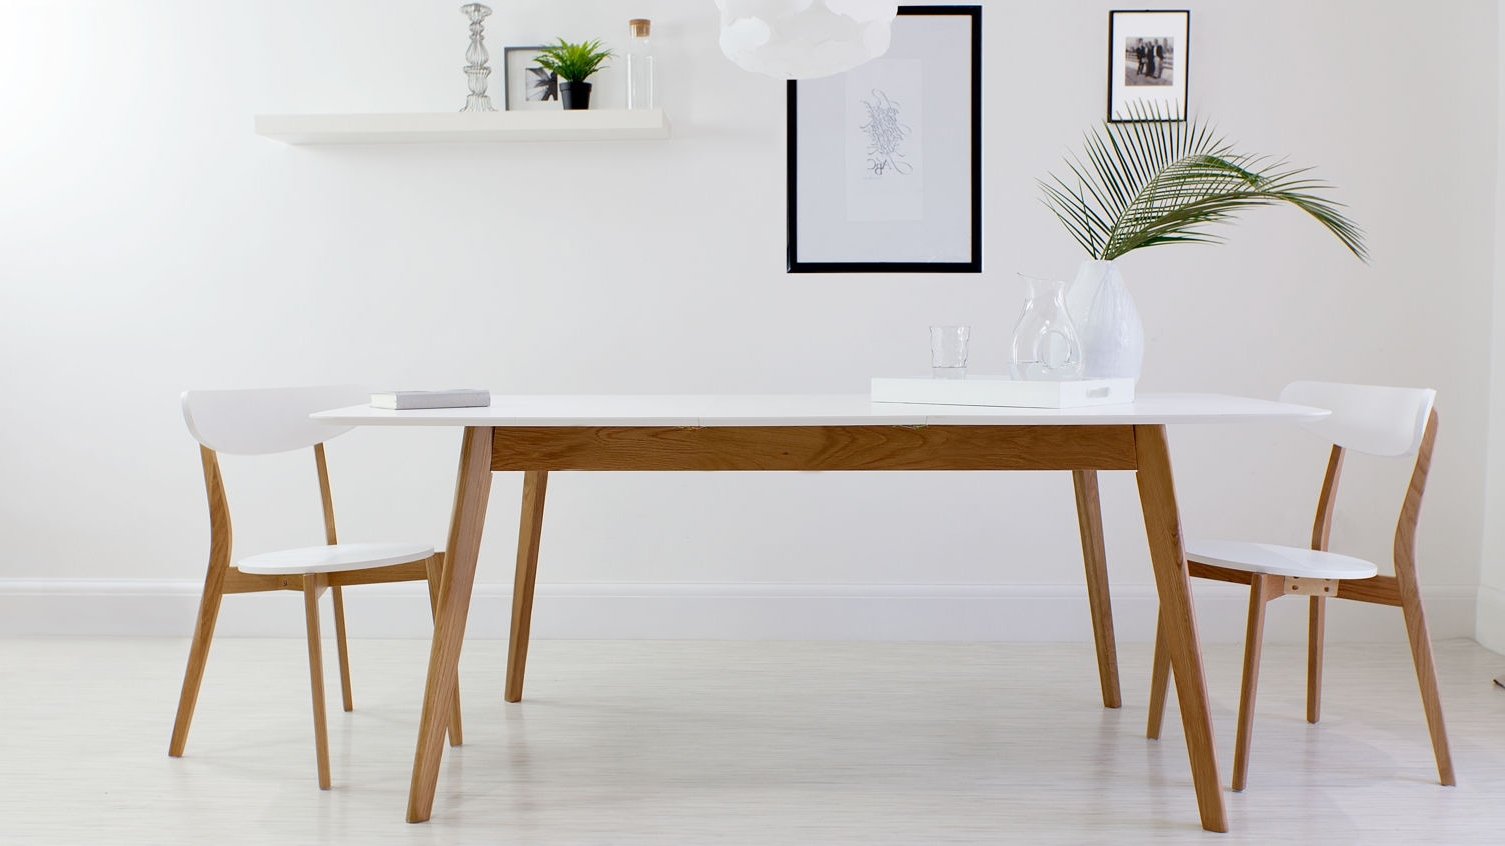 Next White Dining Tables For Most Recent Contemporary White Dining Table Best For Small Room (View 16 of 25)